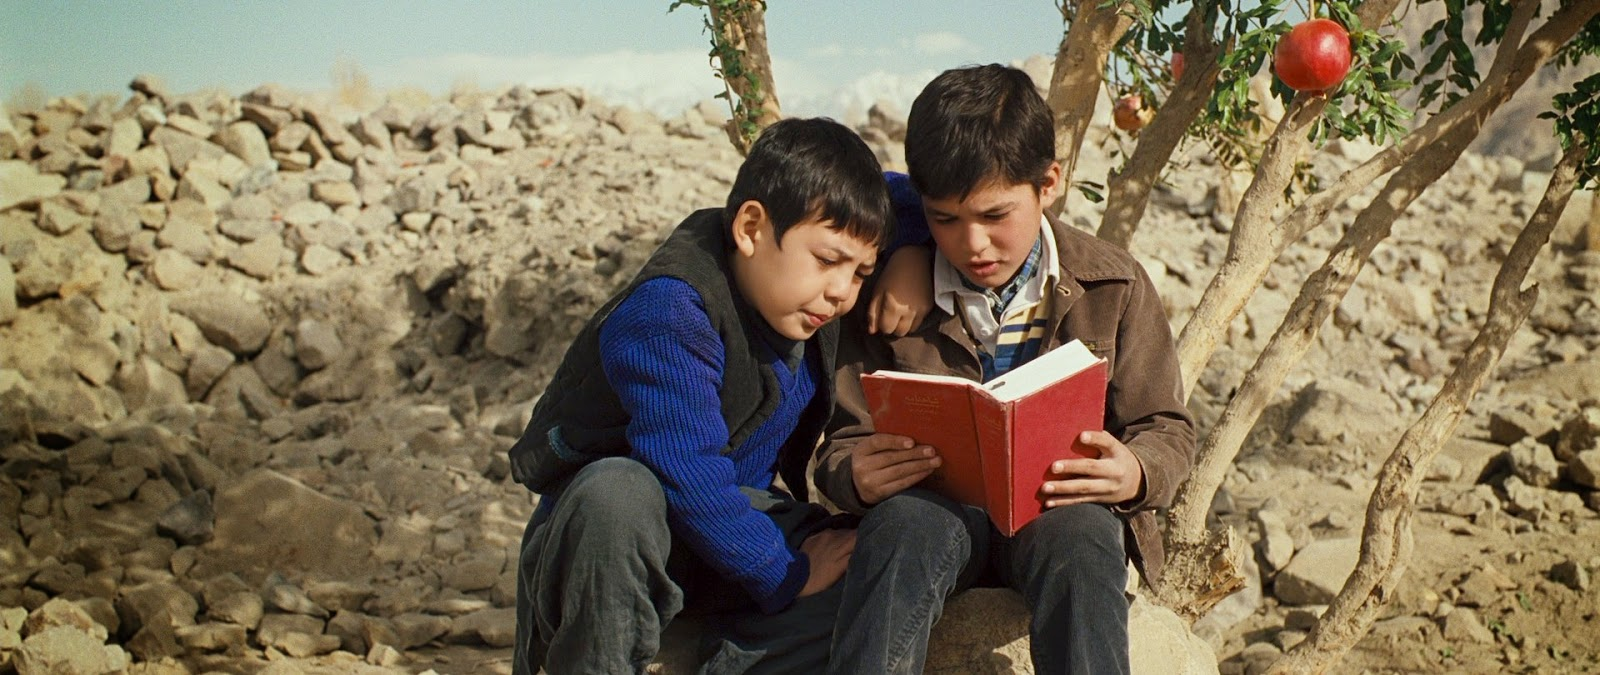 i s u journal kite runner A journal of the minnesota council of teachers of english  the kite runner from a marxist perspective  in the kite runner, amir is the kite flyer, while .